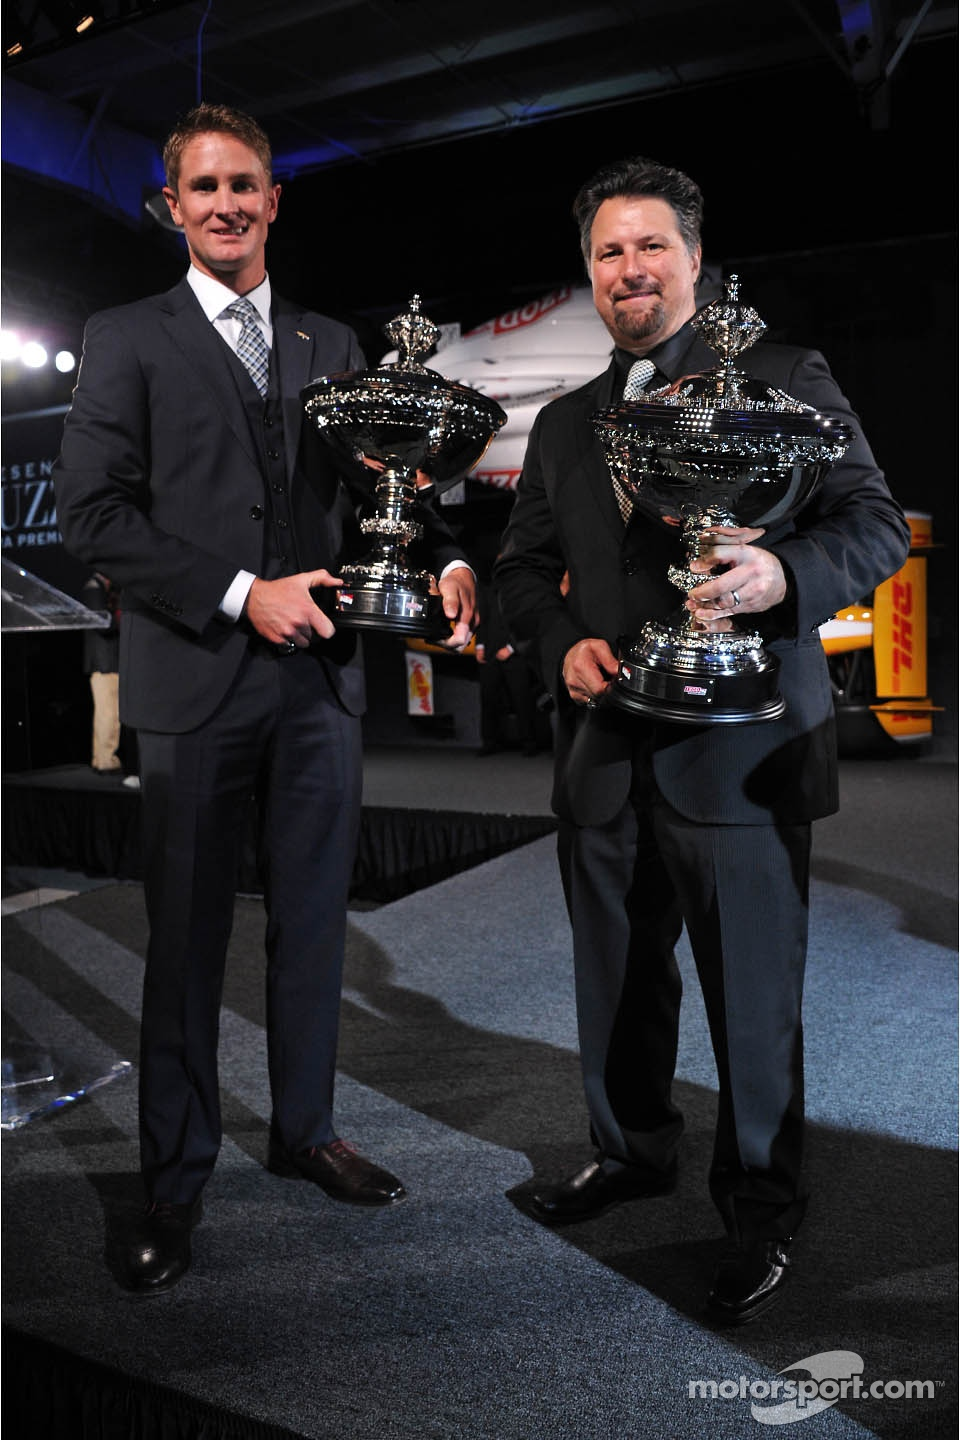 Ryan Hunter-Reay and Michael Andretti, Andretti Autosport